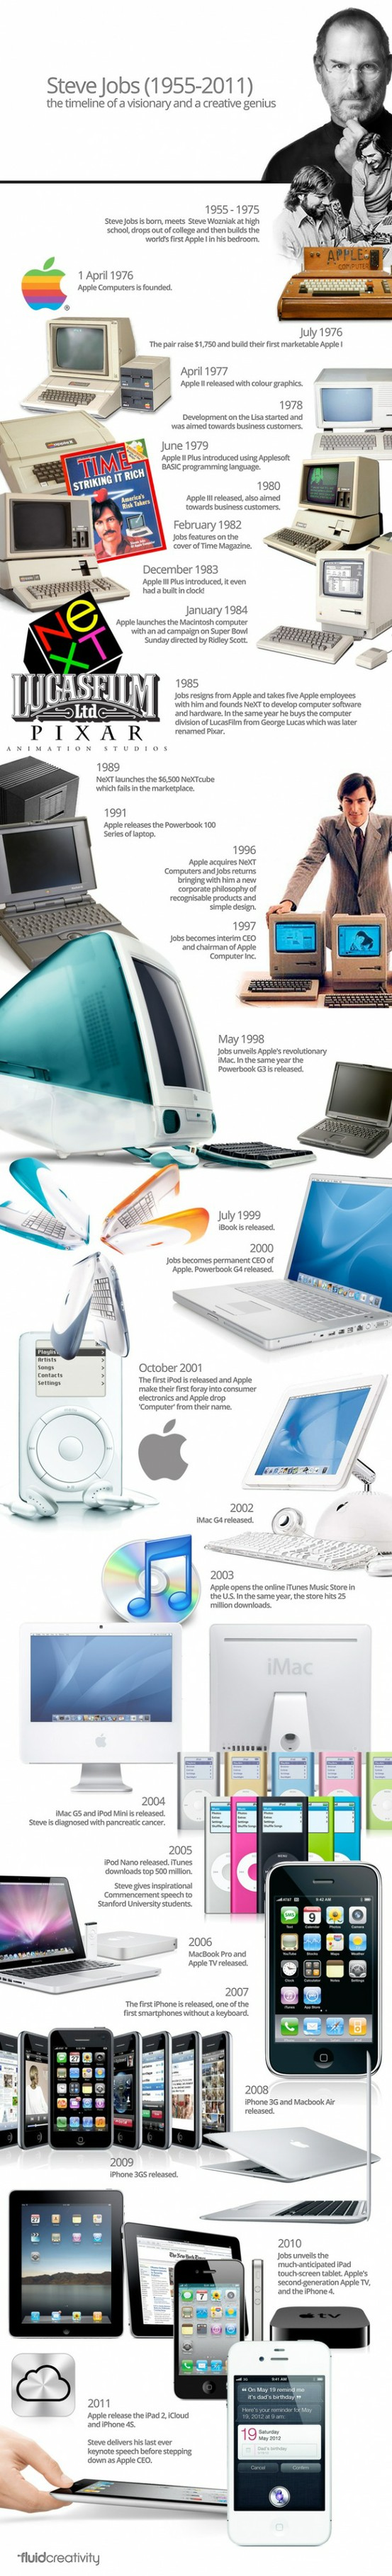 Steve-Jobs-The-Timeline-Of-A-Genius-infographic